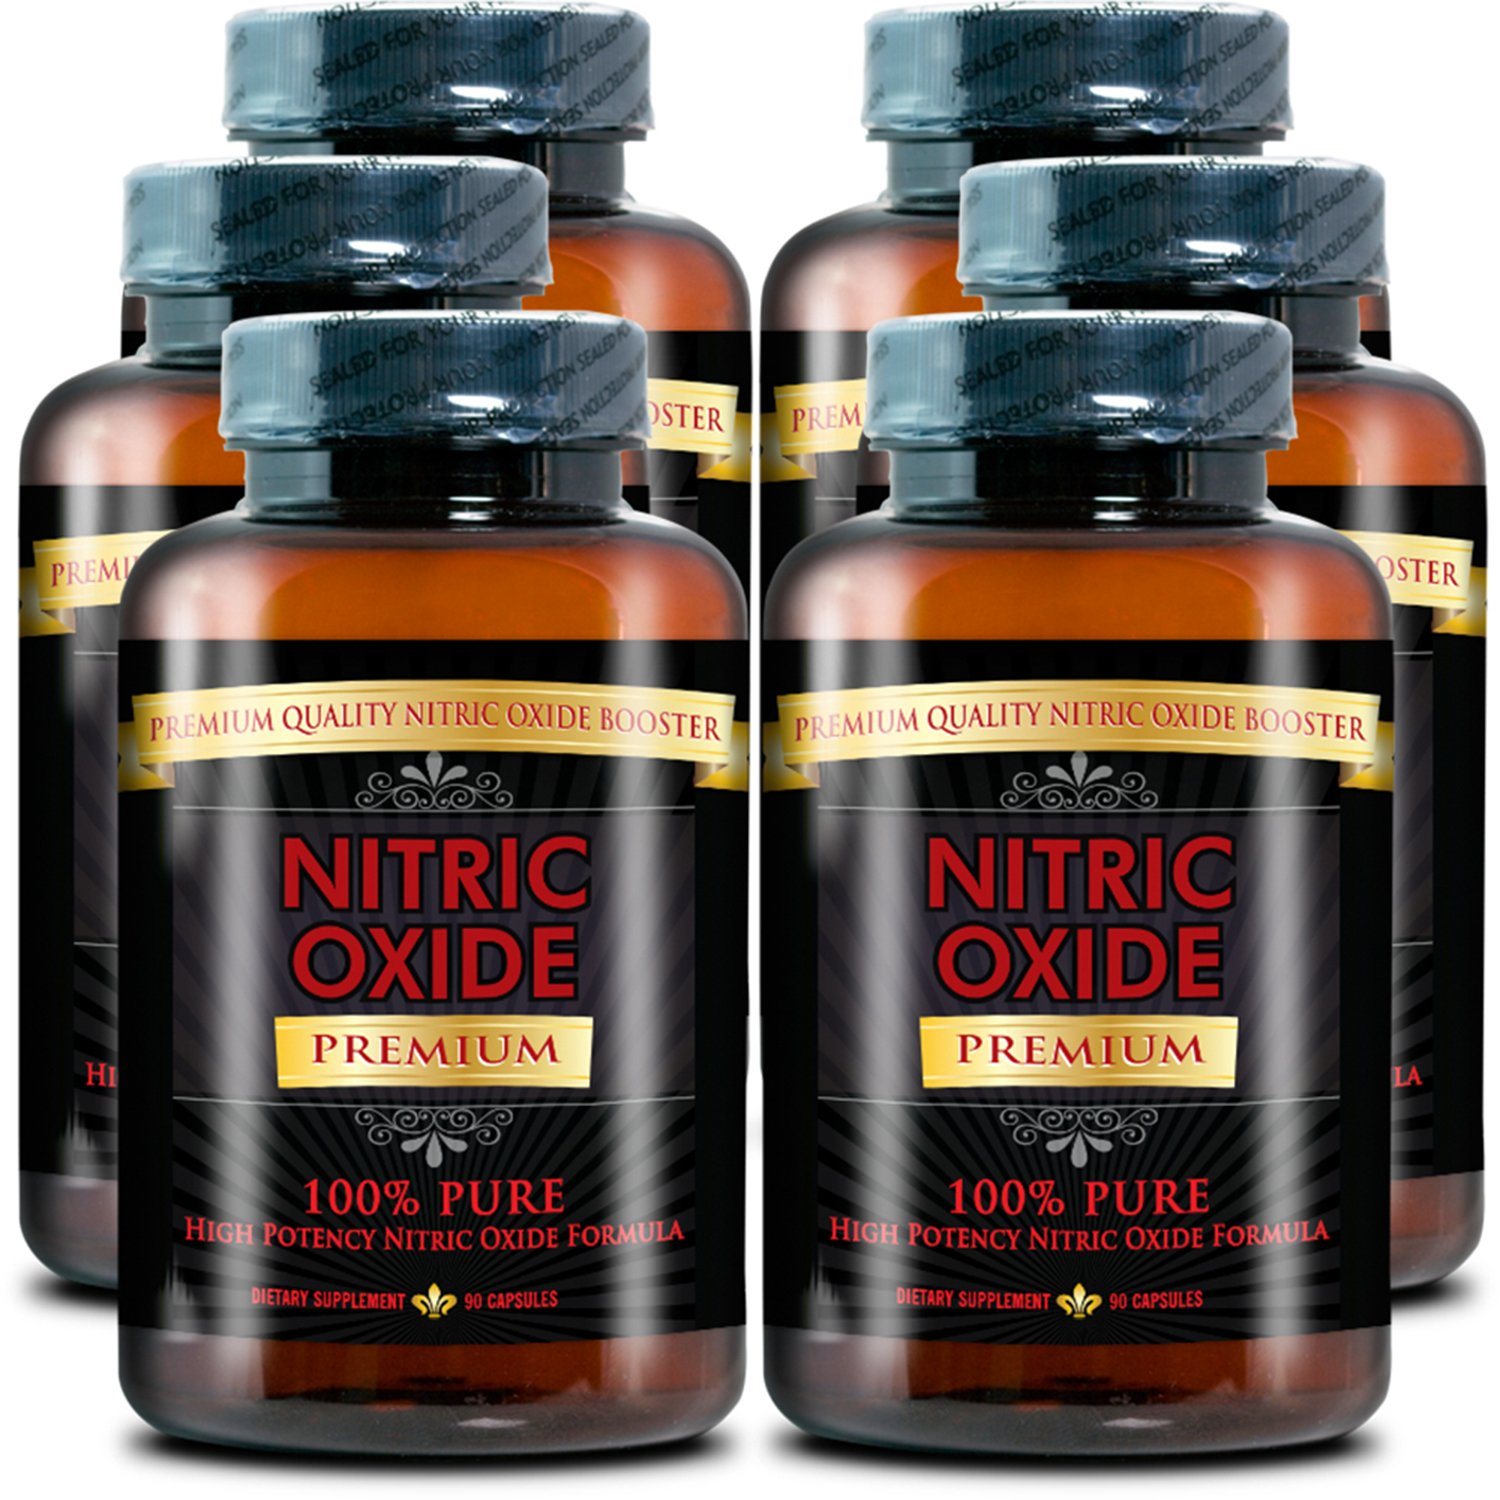 NITRIC OXIDE PREMIUM -#1 Nitric Oxide Supplement on market - with L-Arginine (AAKG) and L-Citrulline - 100% Money Back Guarantee - 6 Month Supply